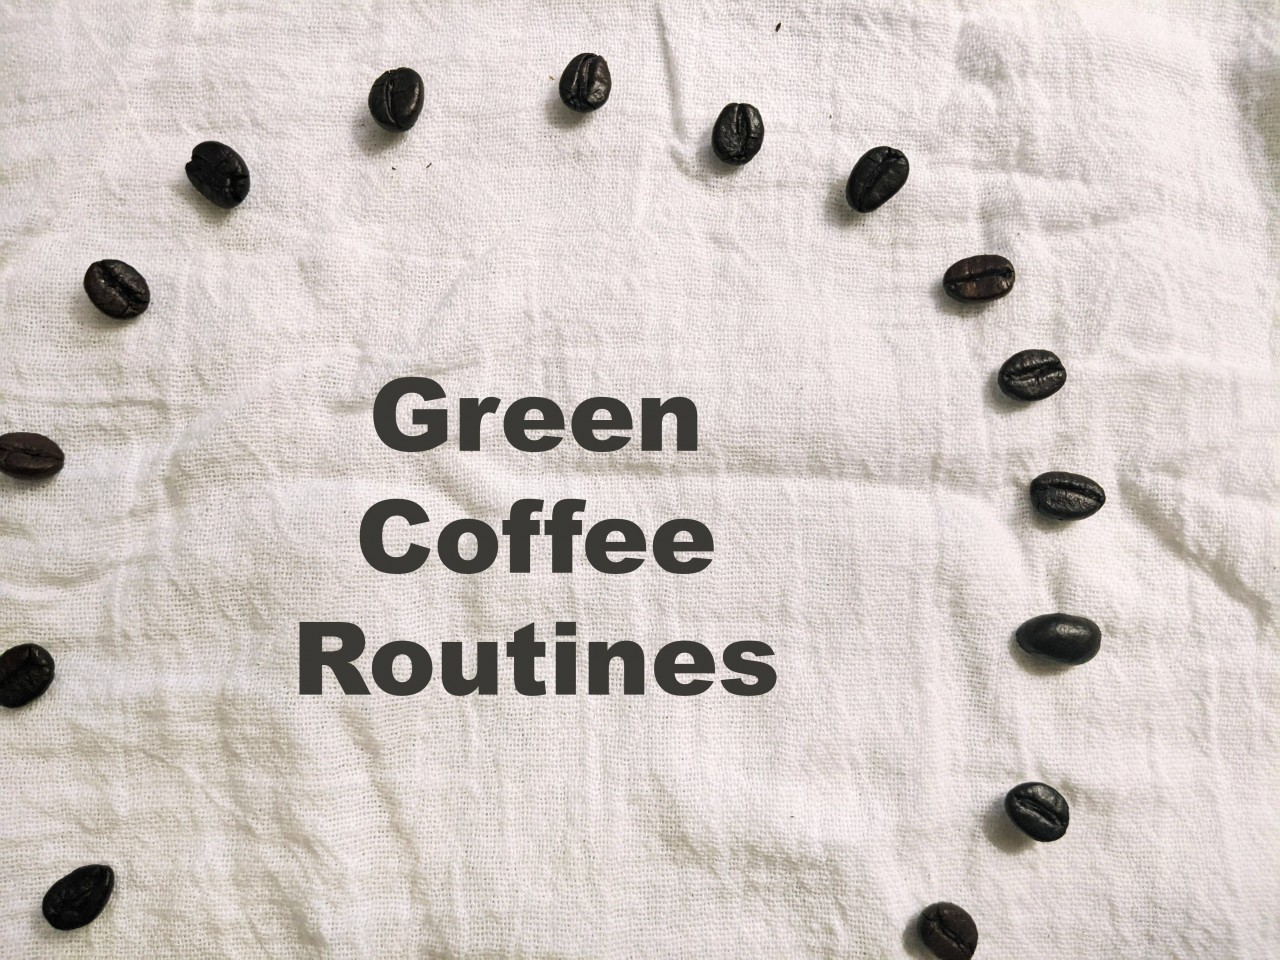 green coffee routines